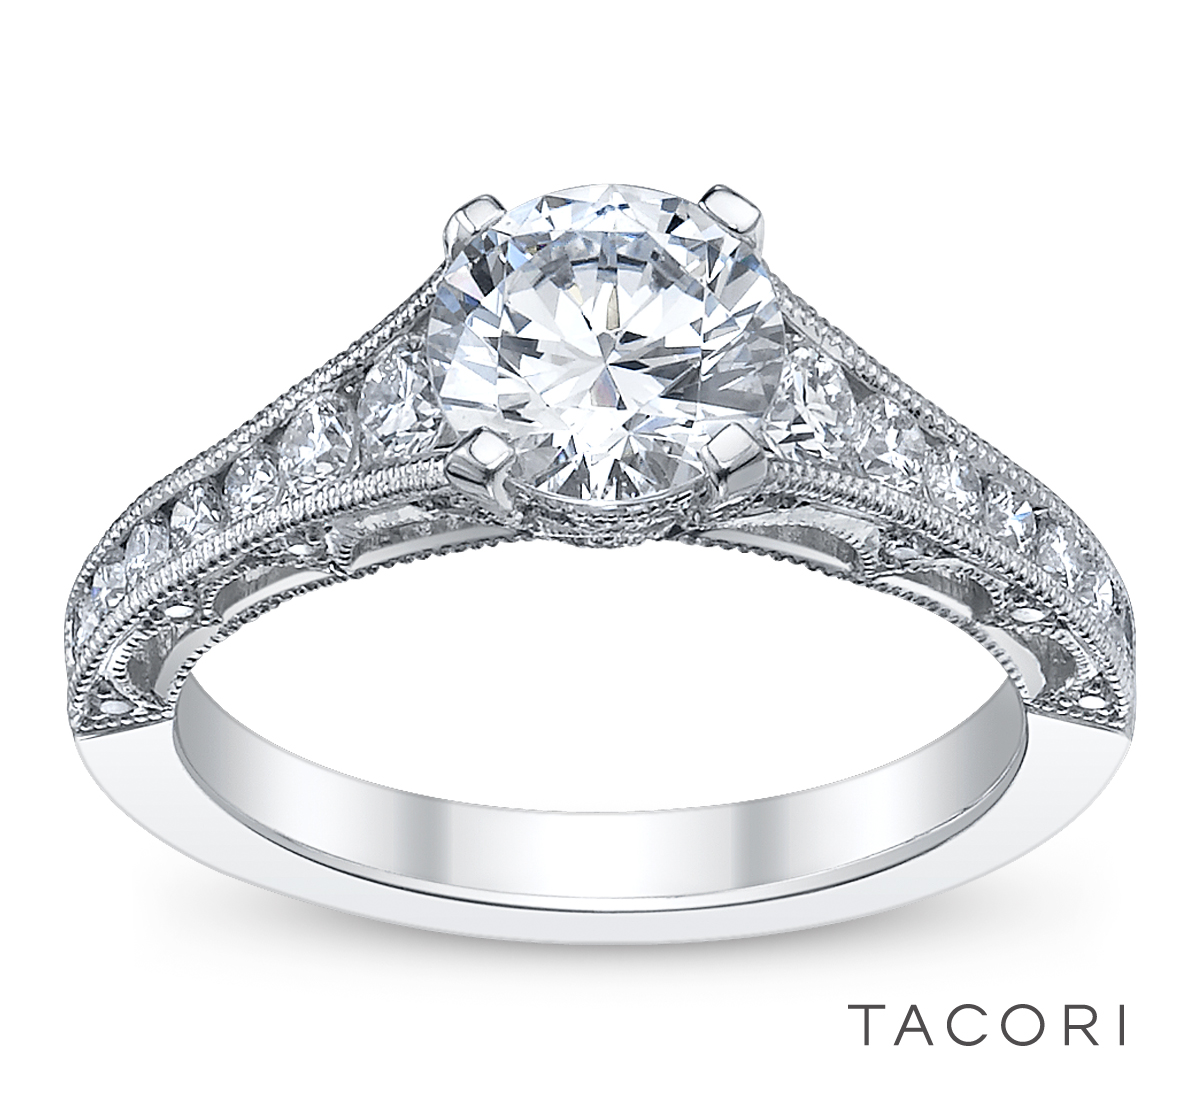 tacori engagement ring robbins brothers engagement rings